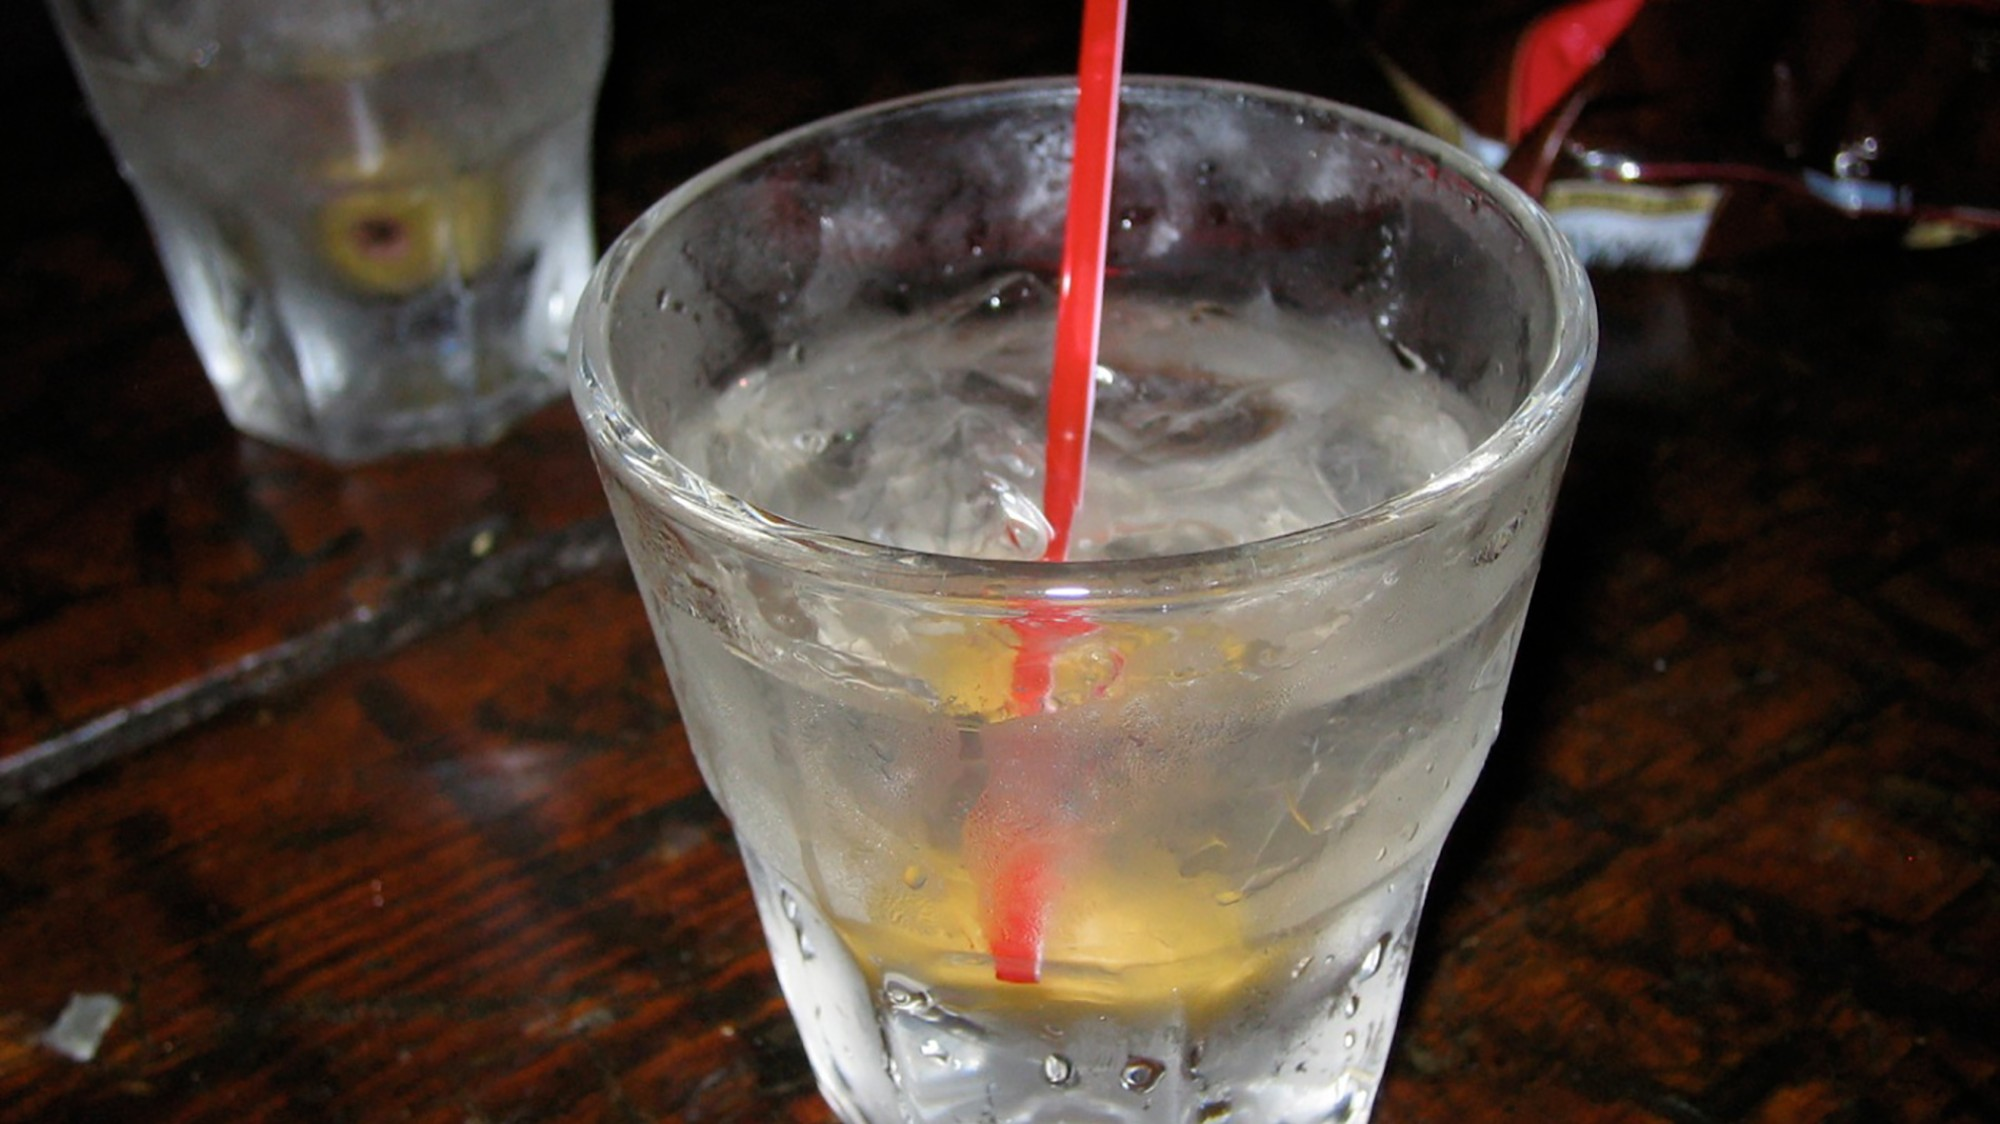 The UK Is Drinking Counterfeit Vodka Made of Paint Thinner